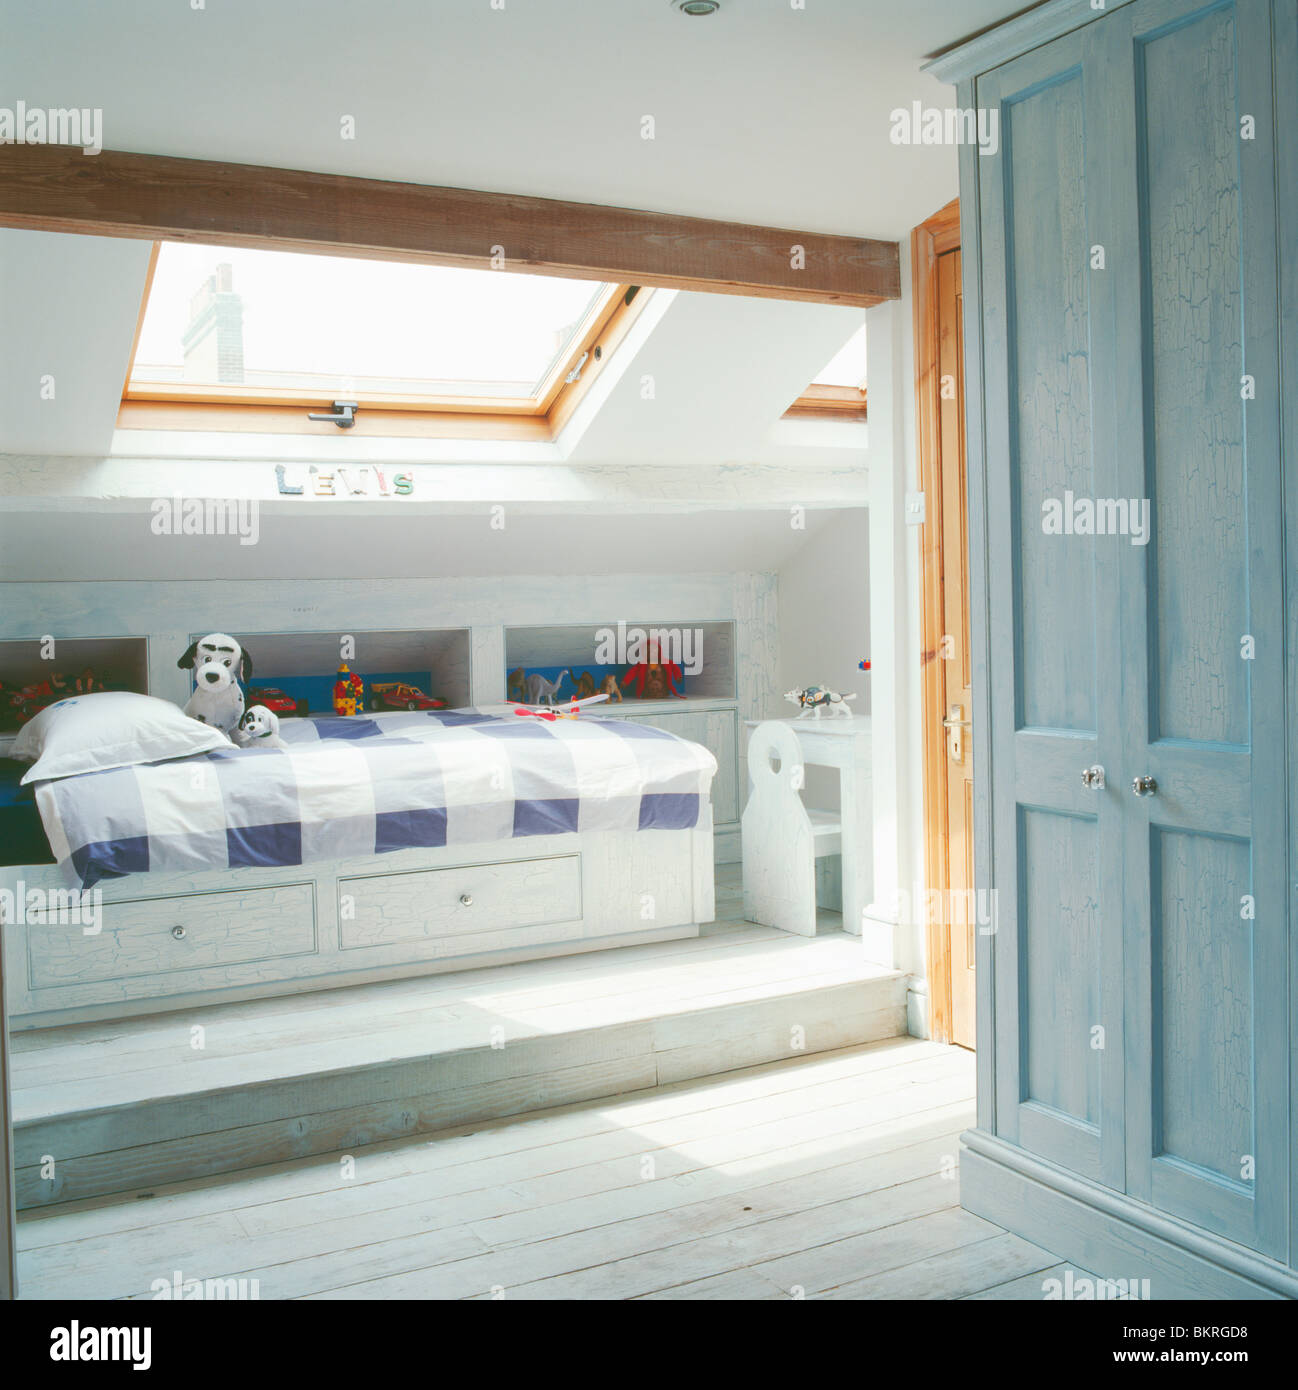 Loft Conversion Bedroom Childs Modern Loft Conversion Bedroom With Under Bed Storage And